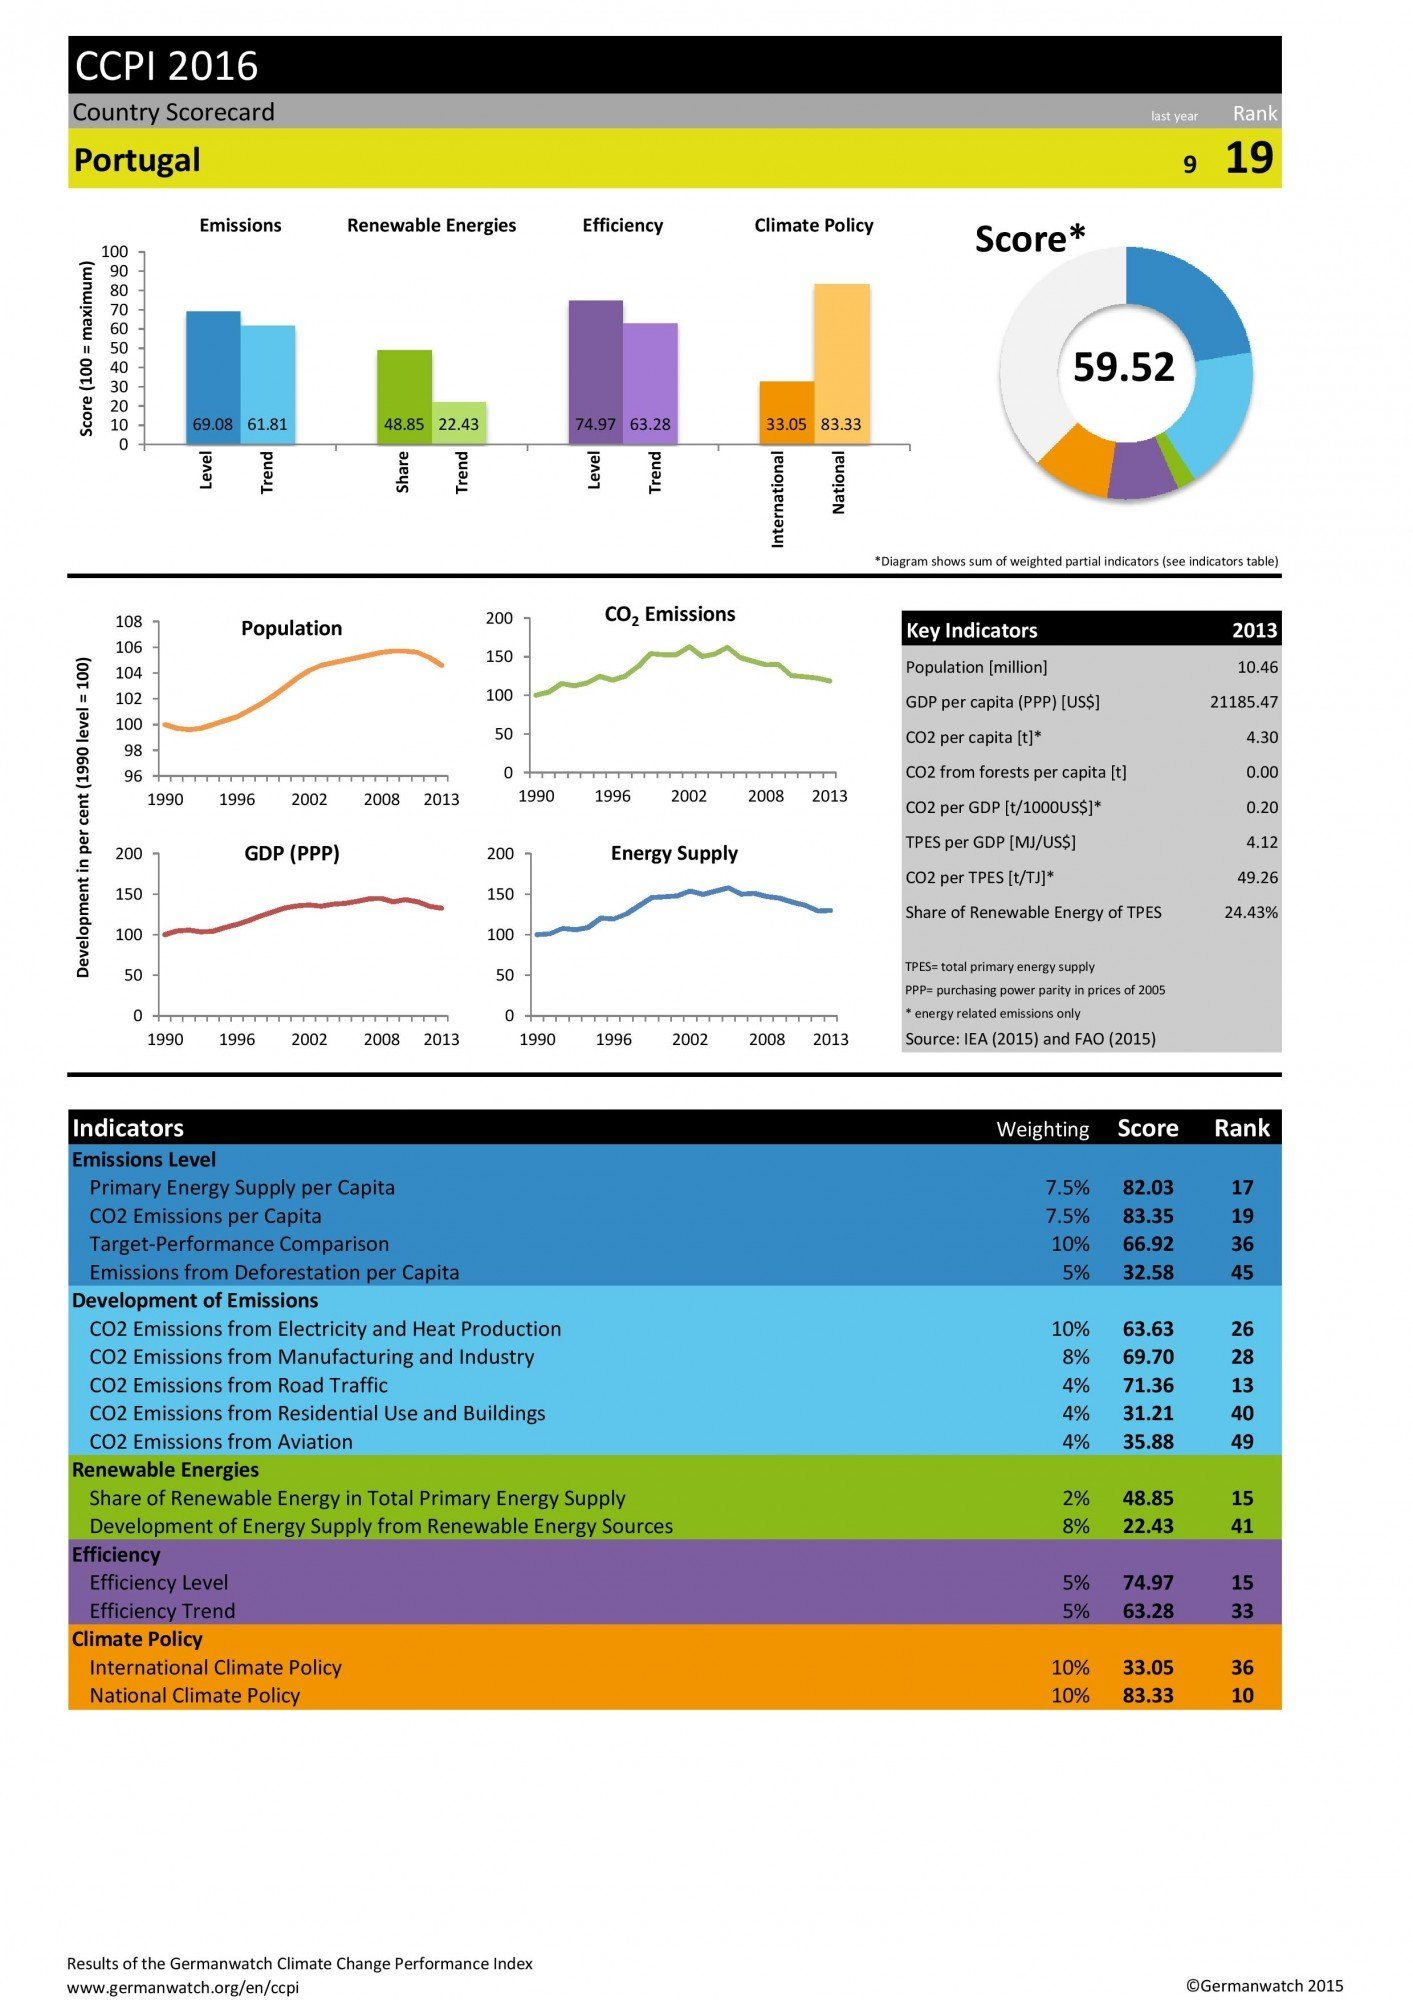 CCPI2016_Scorecard_Portugal_nc-page-001_Germanwatch